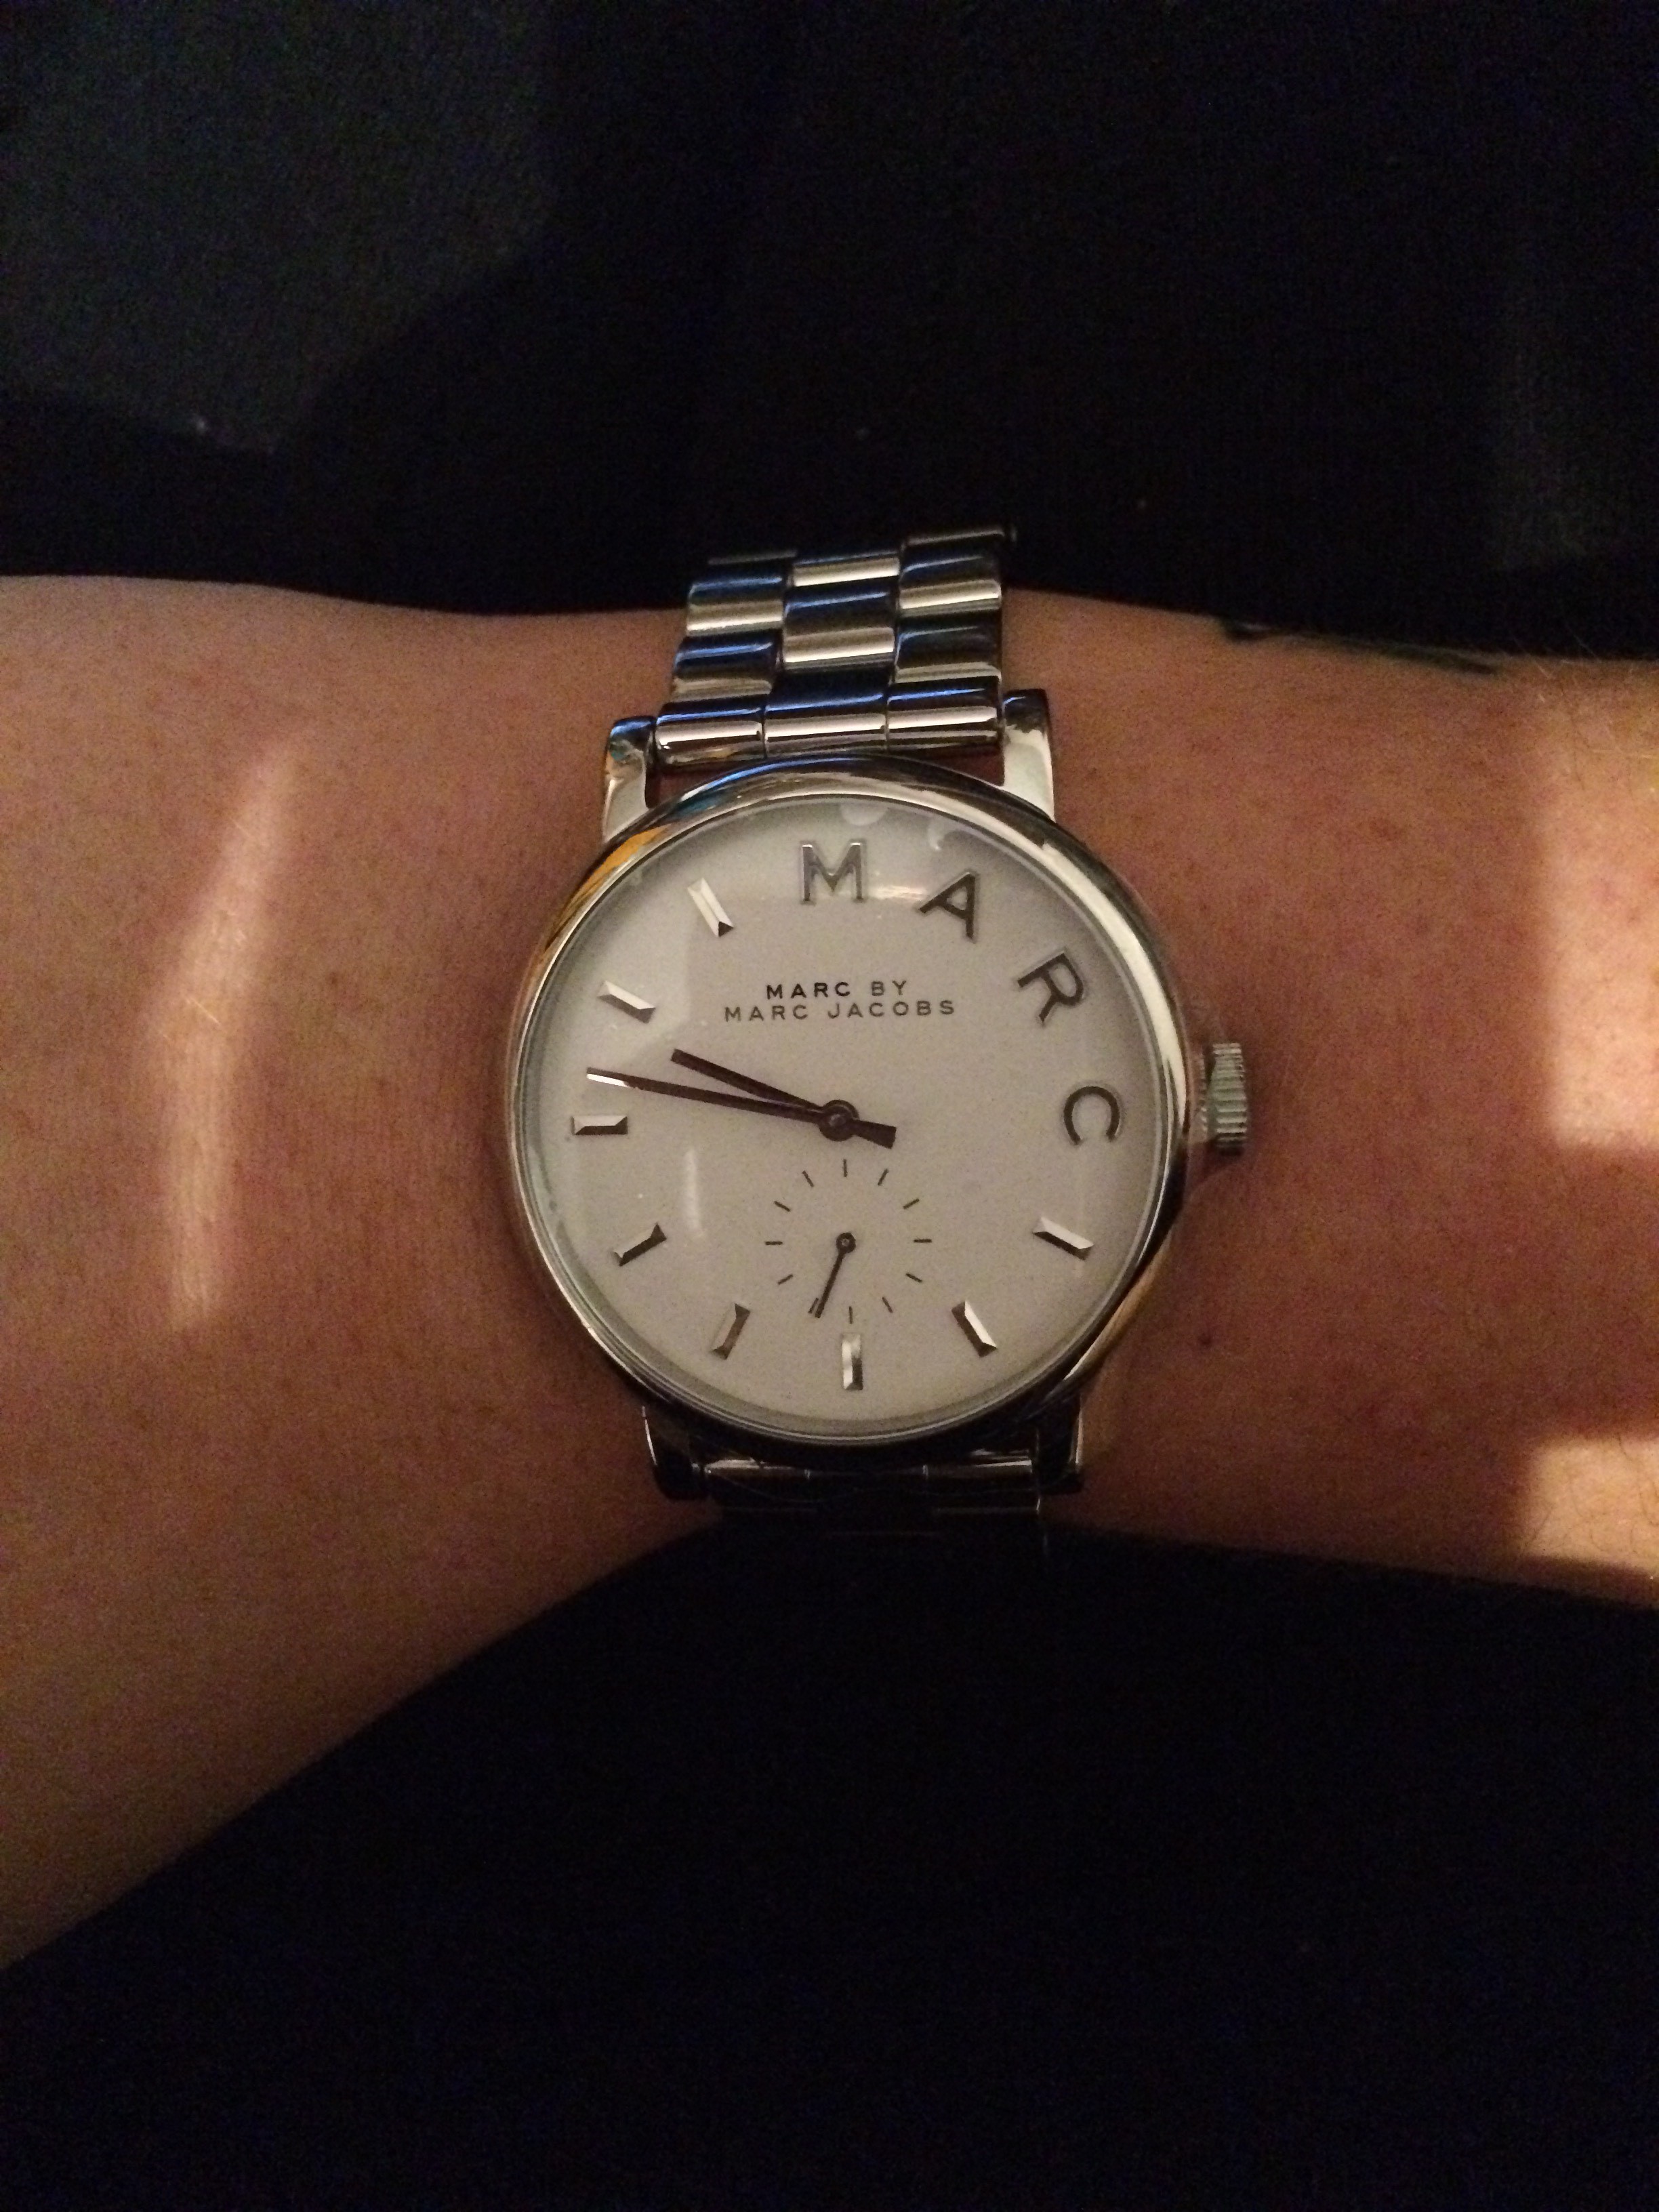 882d89e5eea5f I am so pleased with this fantastic watch! Received as a birthday present  from my partner and was the best choice! I have had a Michael Kors watch  and they ...